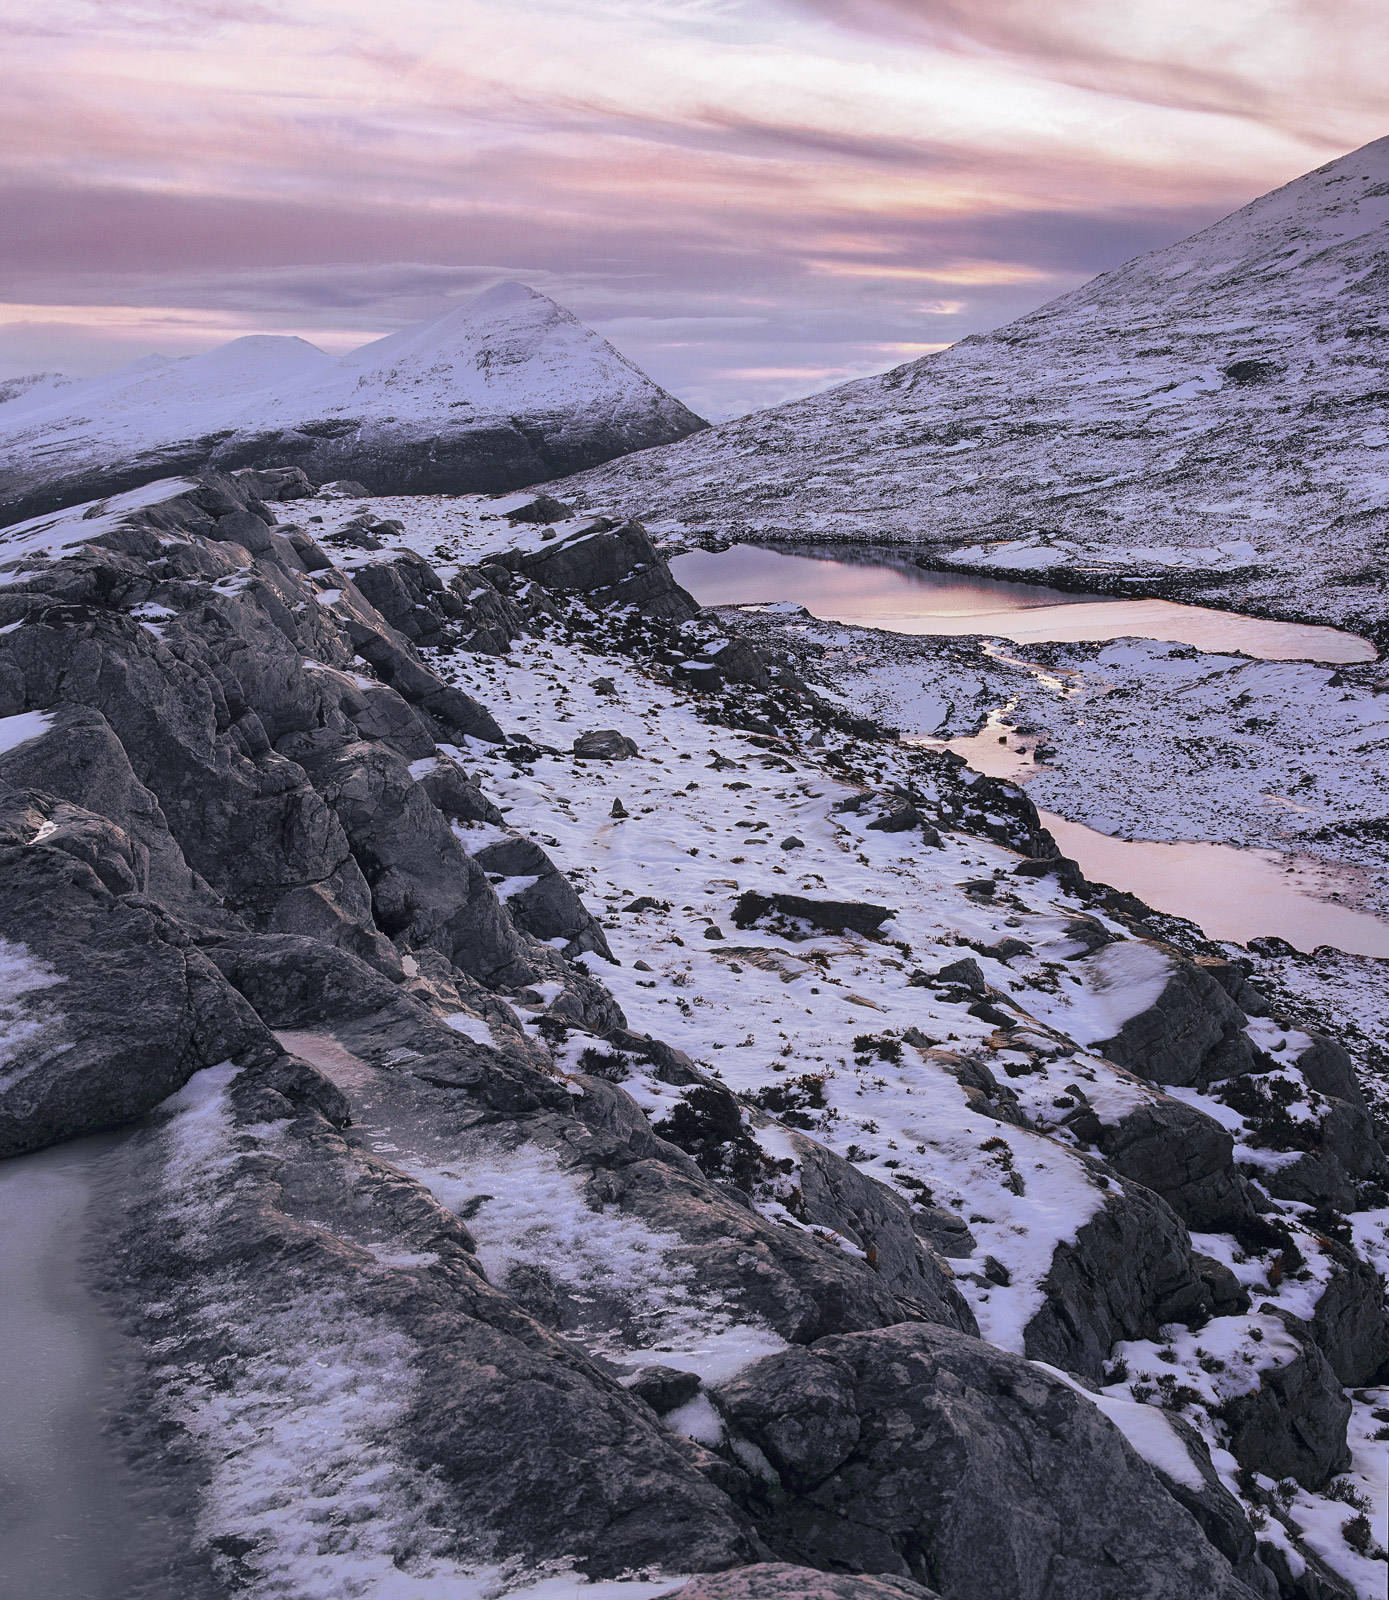 I have climbed the giant peaks of An Teallach four times and only on one occasion did I get good photographic conditions despite...